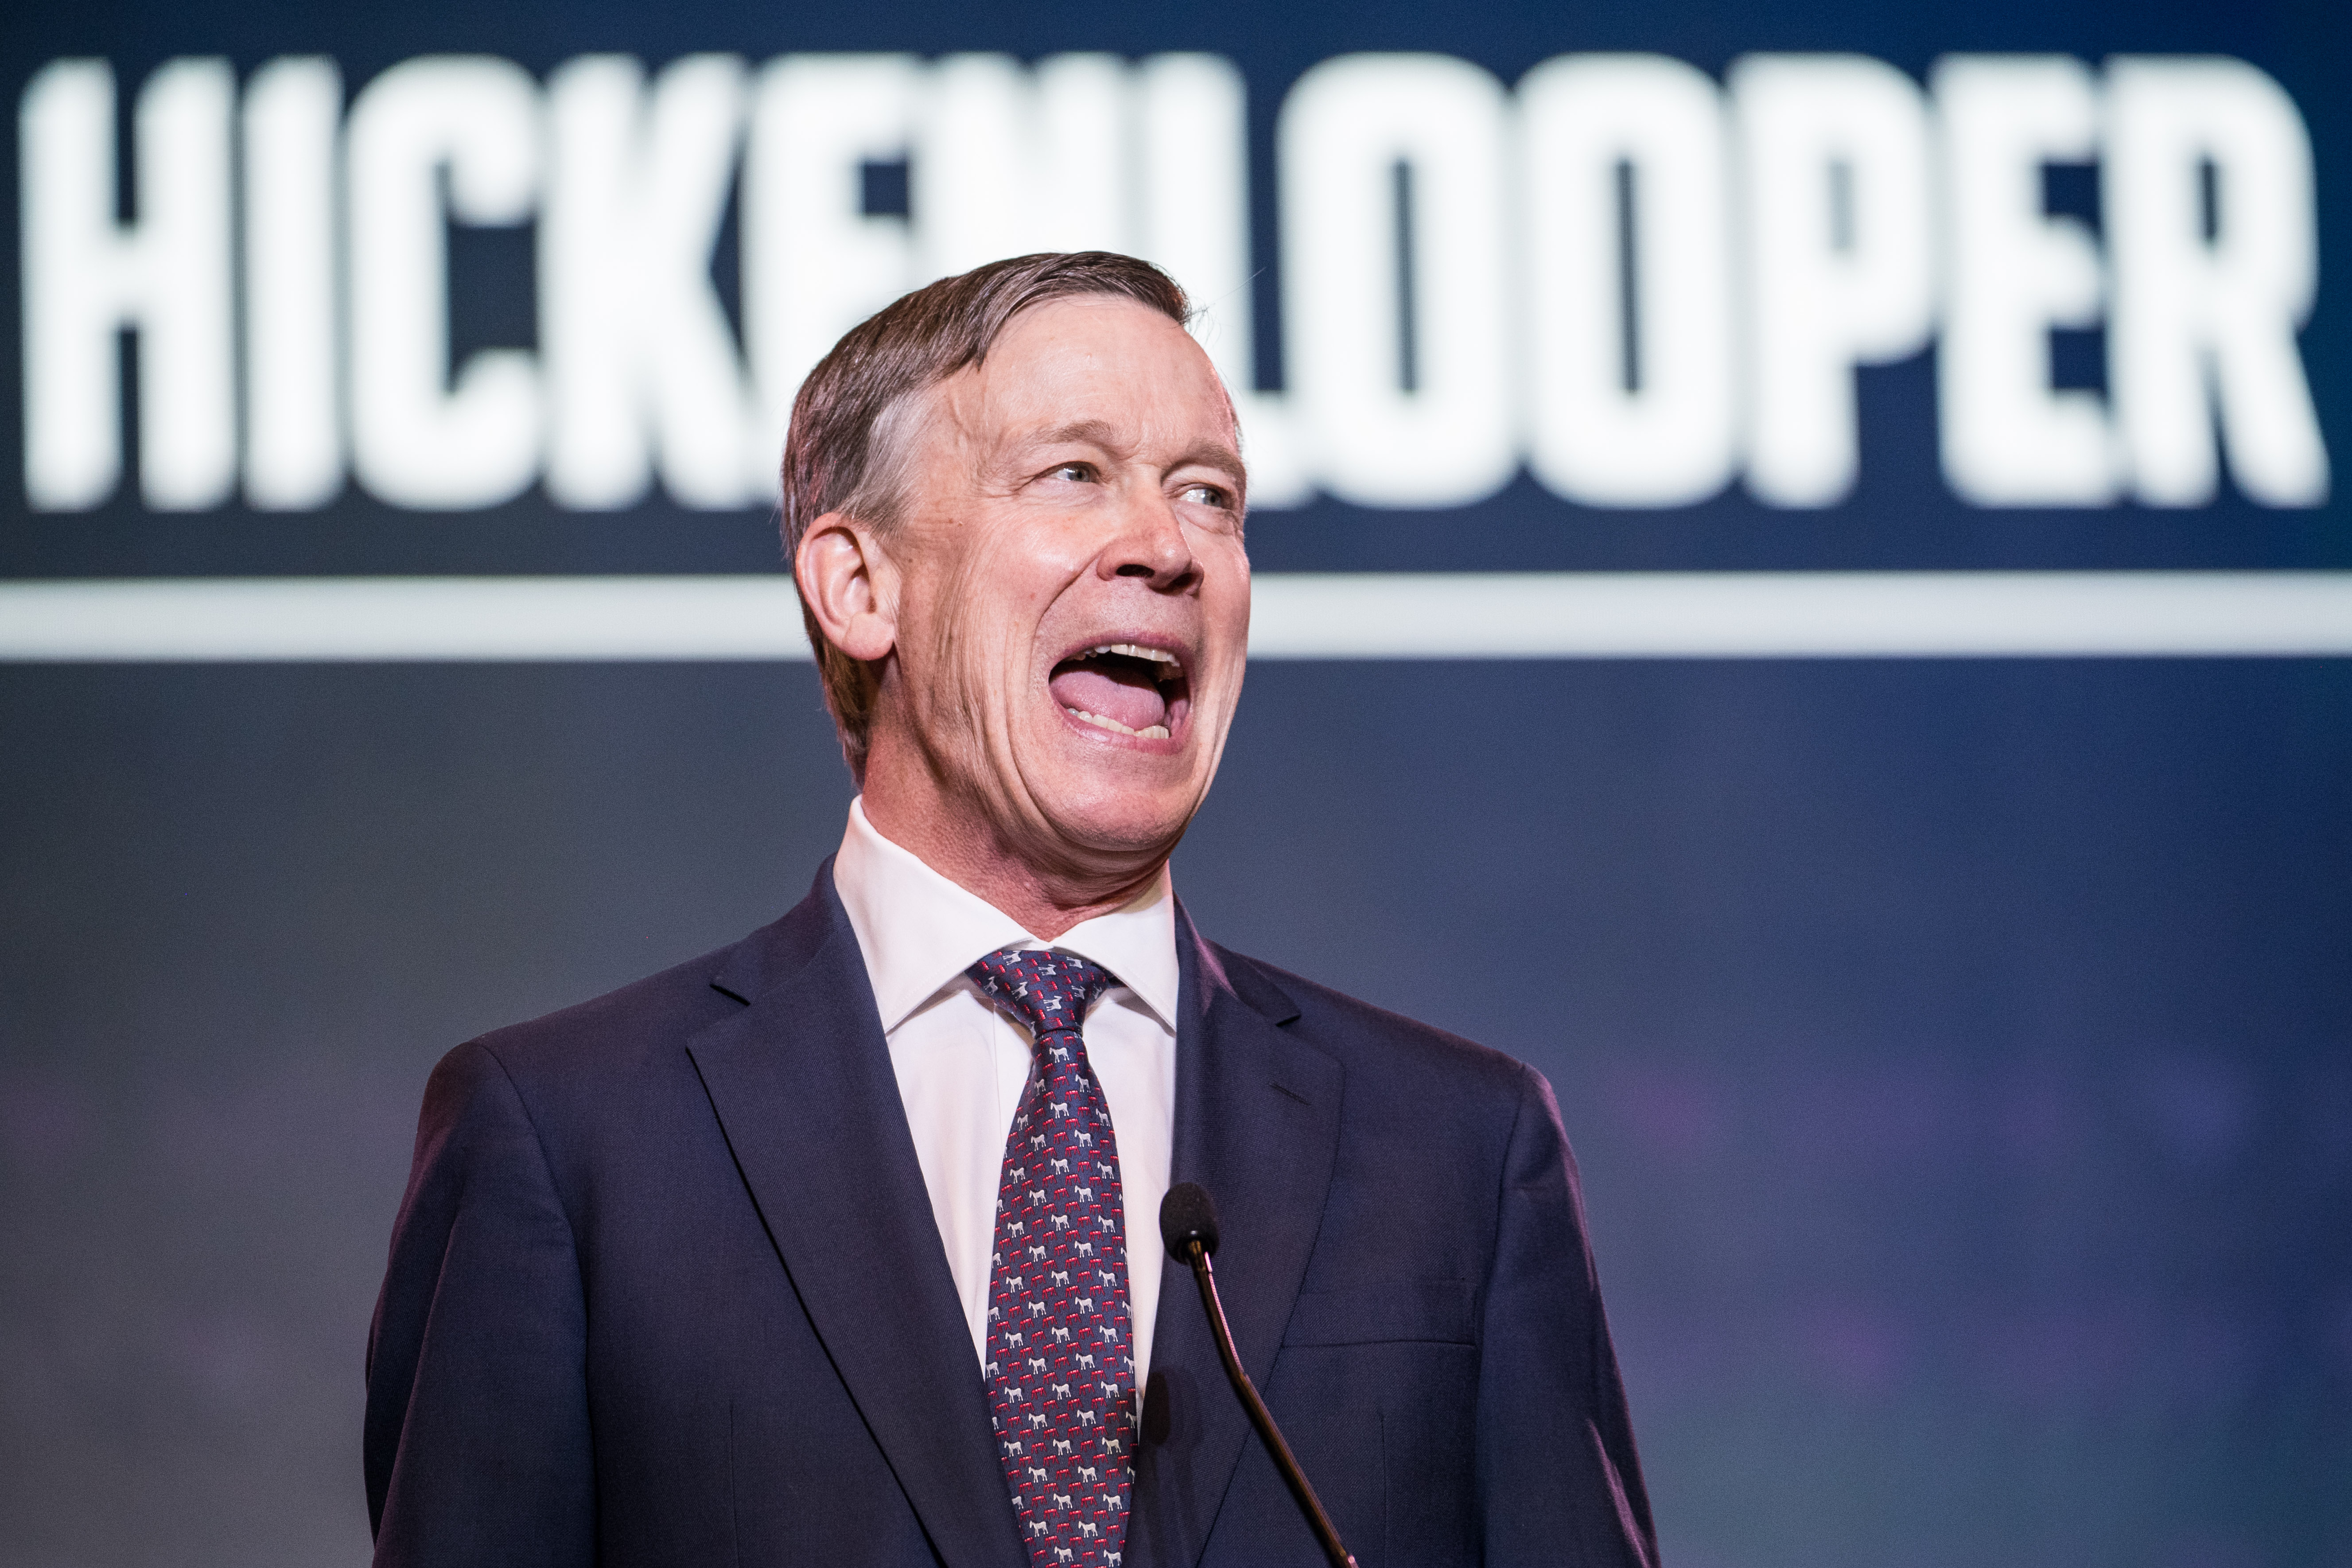 Democratic presidential candidate, former Colorado Governor John Hickenlooper speaks to the crowd during the 2019 South Carolina Democratic Party State Convention on June 22, 2019 in Columbia, South Carolina. (Photo by Sean Rayford/Getty Images)